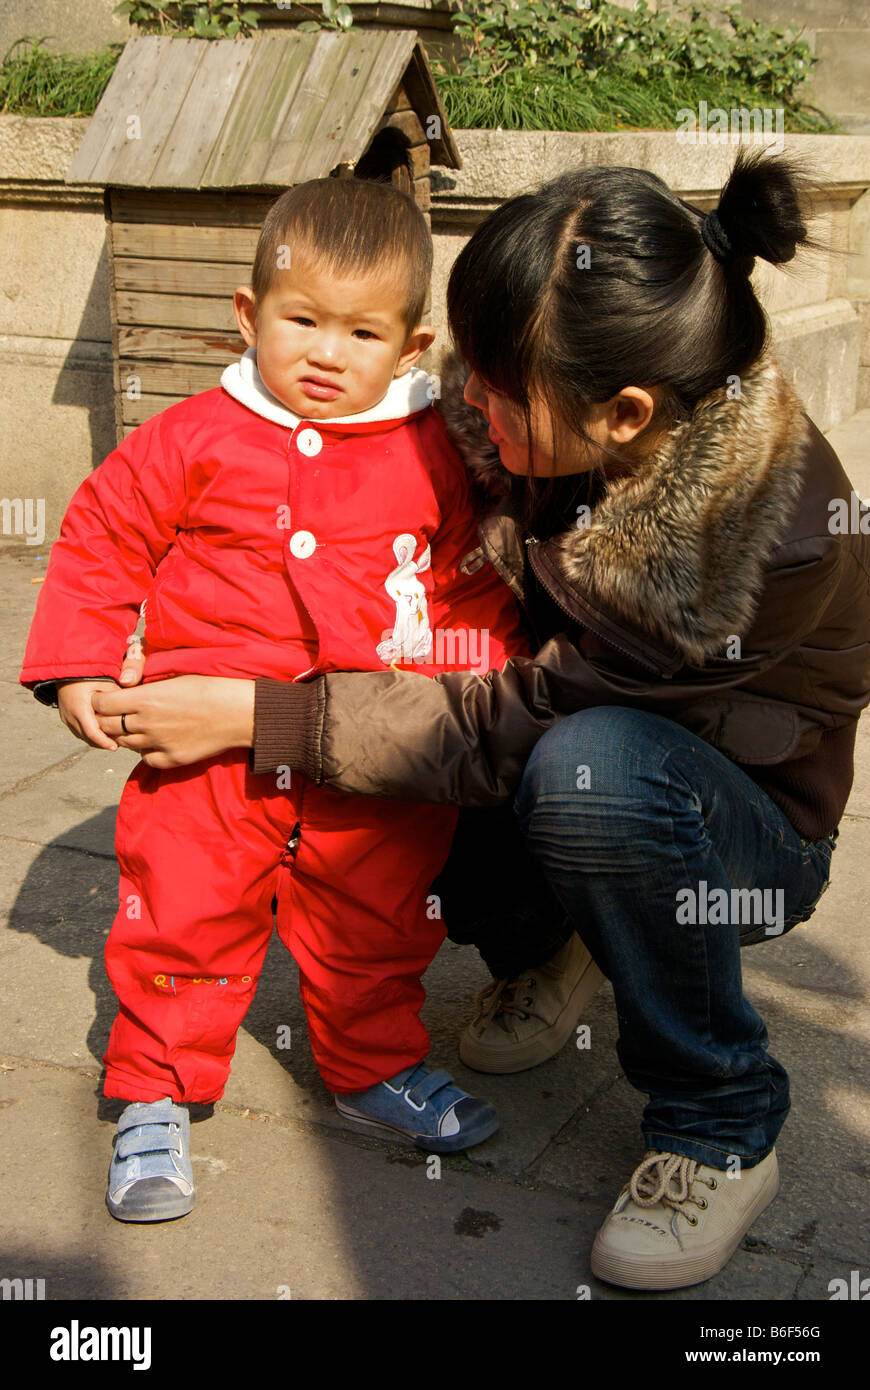 Chinese mother consoling her crying and teary eyed young toddler son on Qilishantang Street - Stock Image